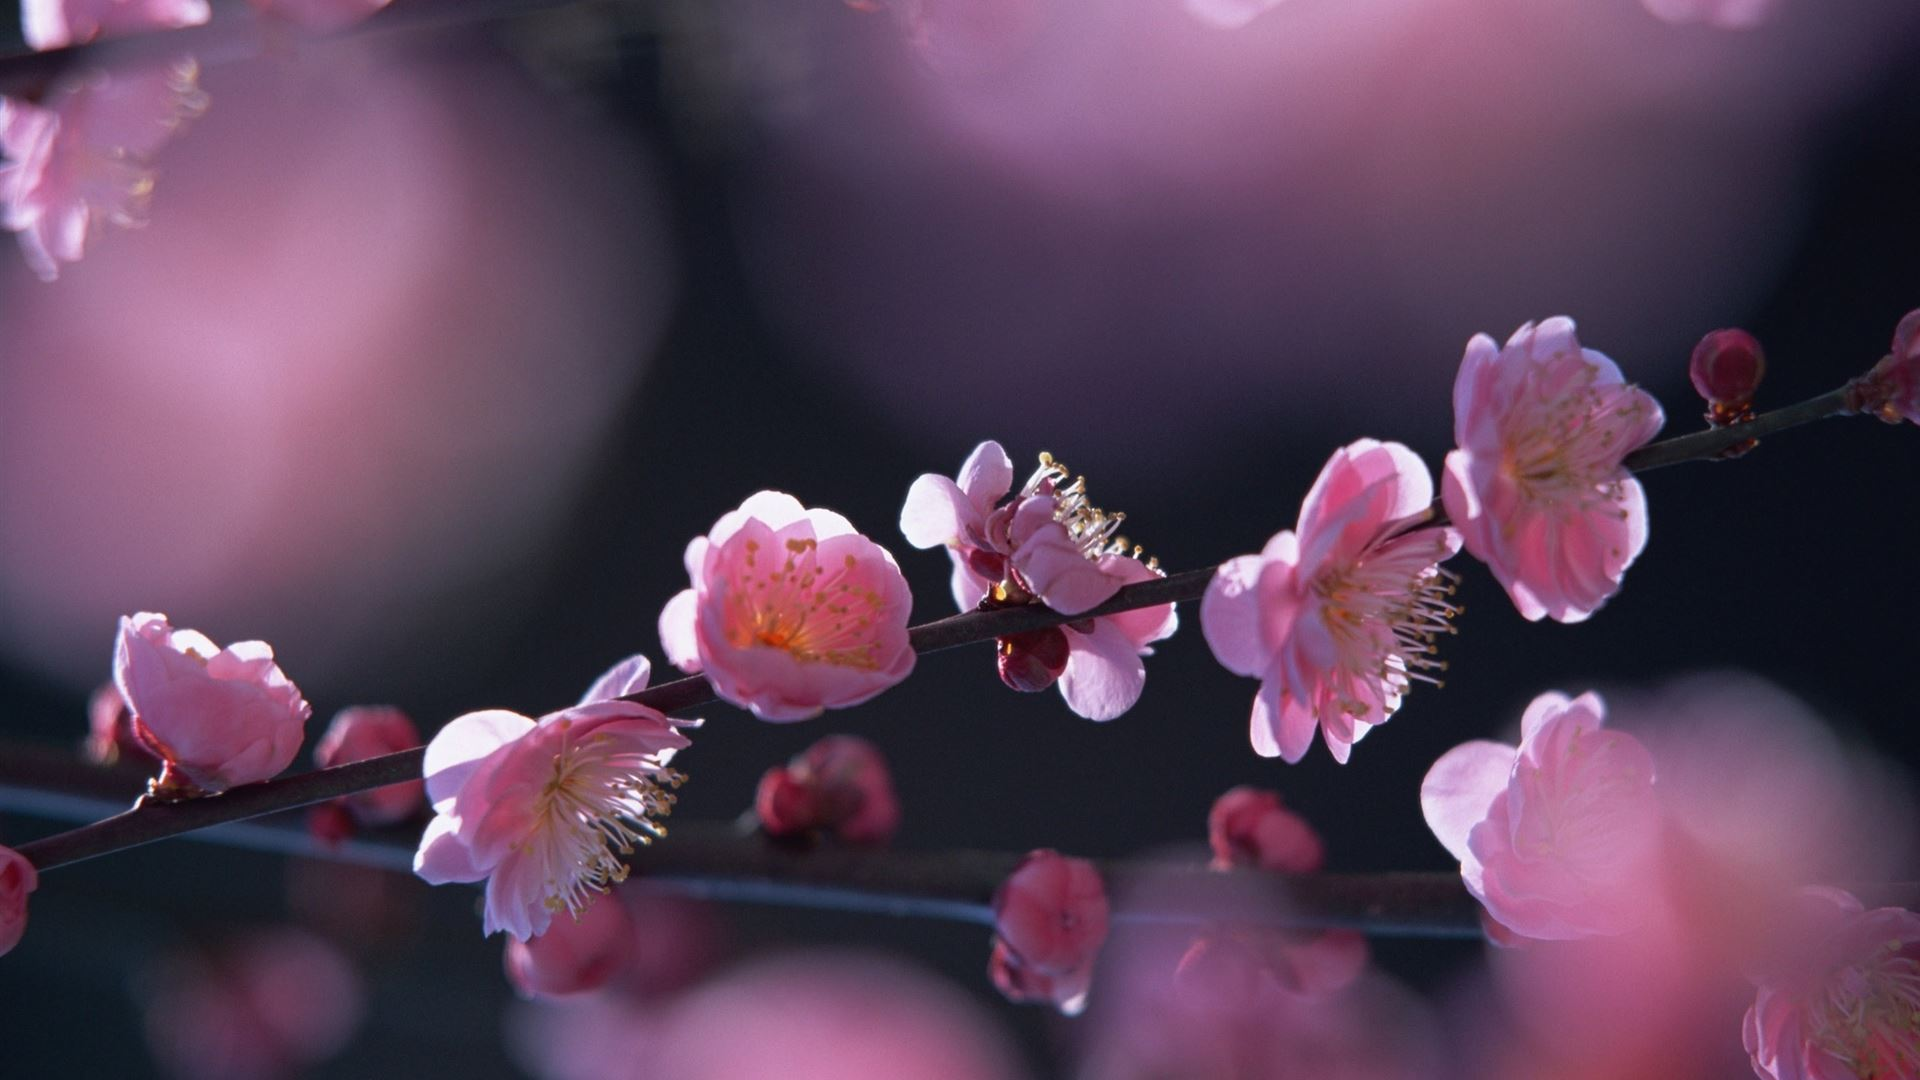 Pink Blossom Flowers Mac Wallpaper Download Free Mac Wallpapers